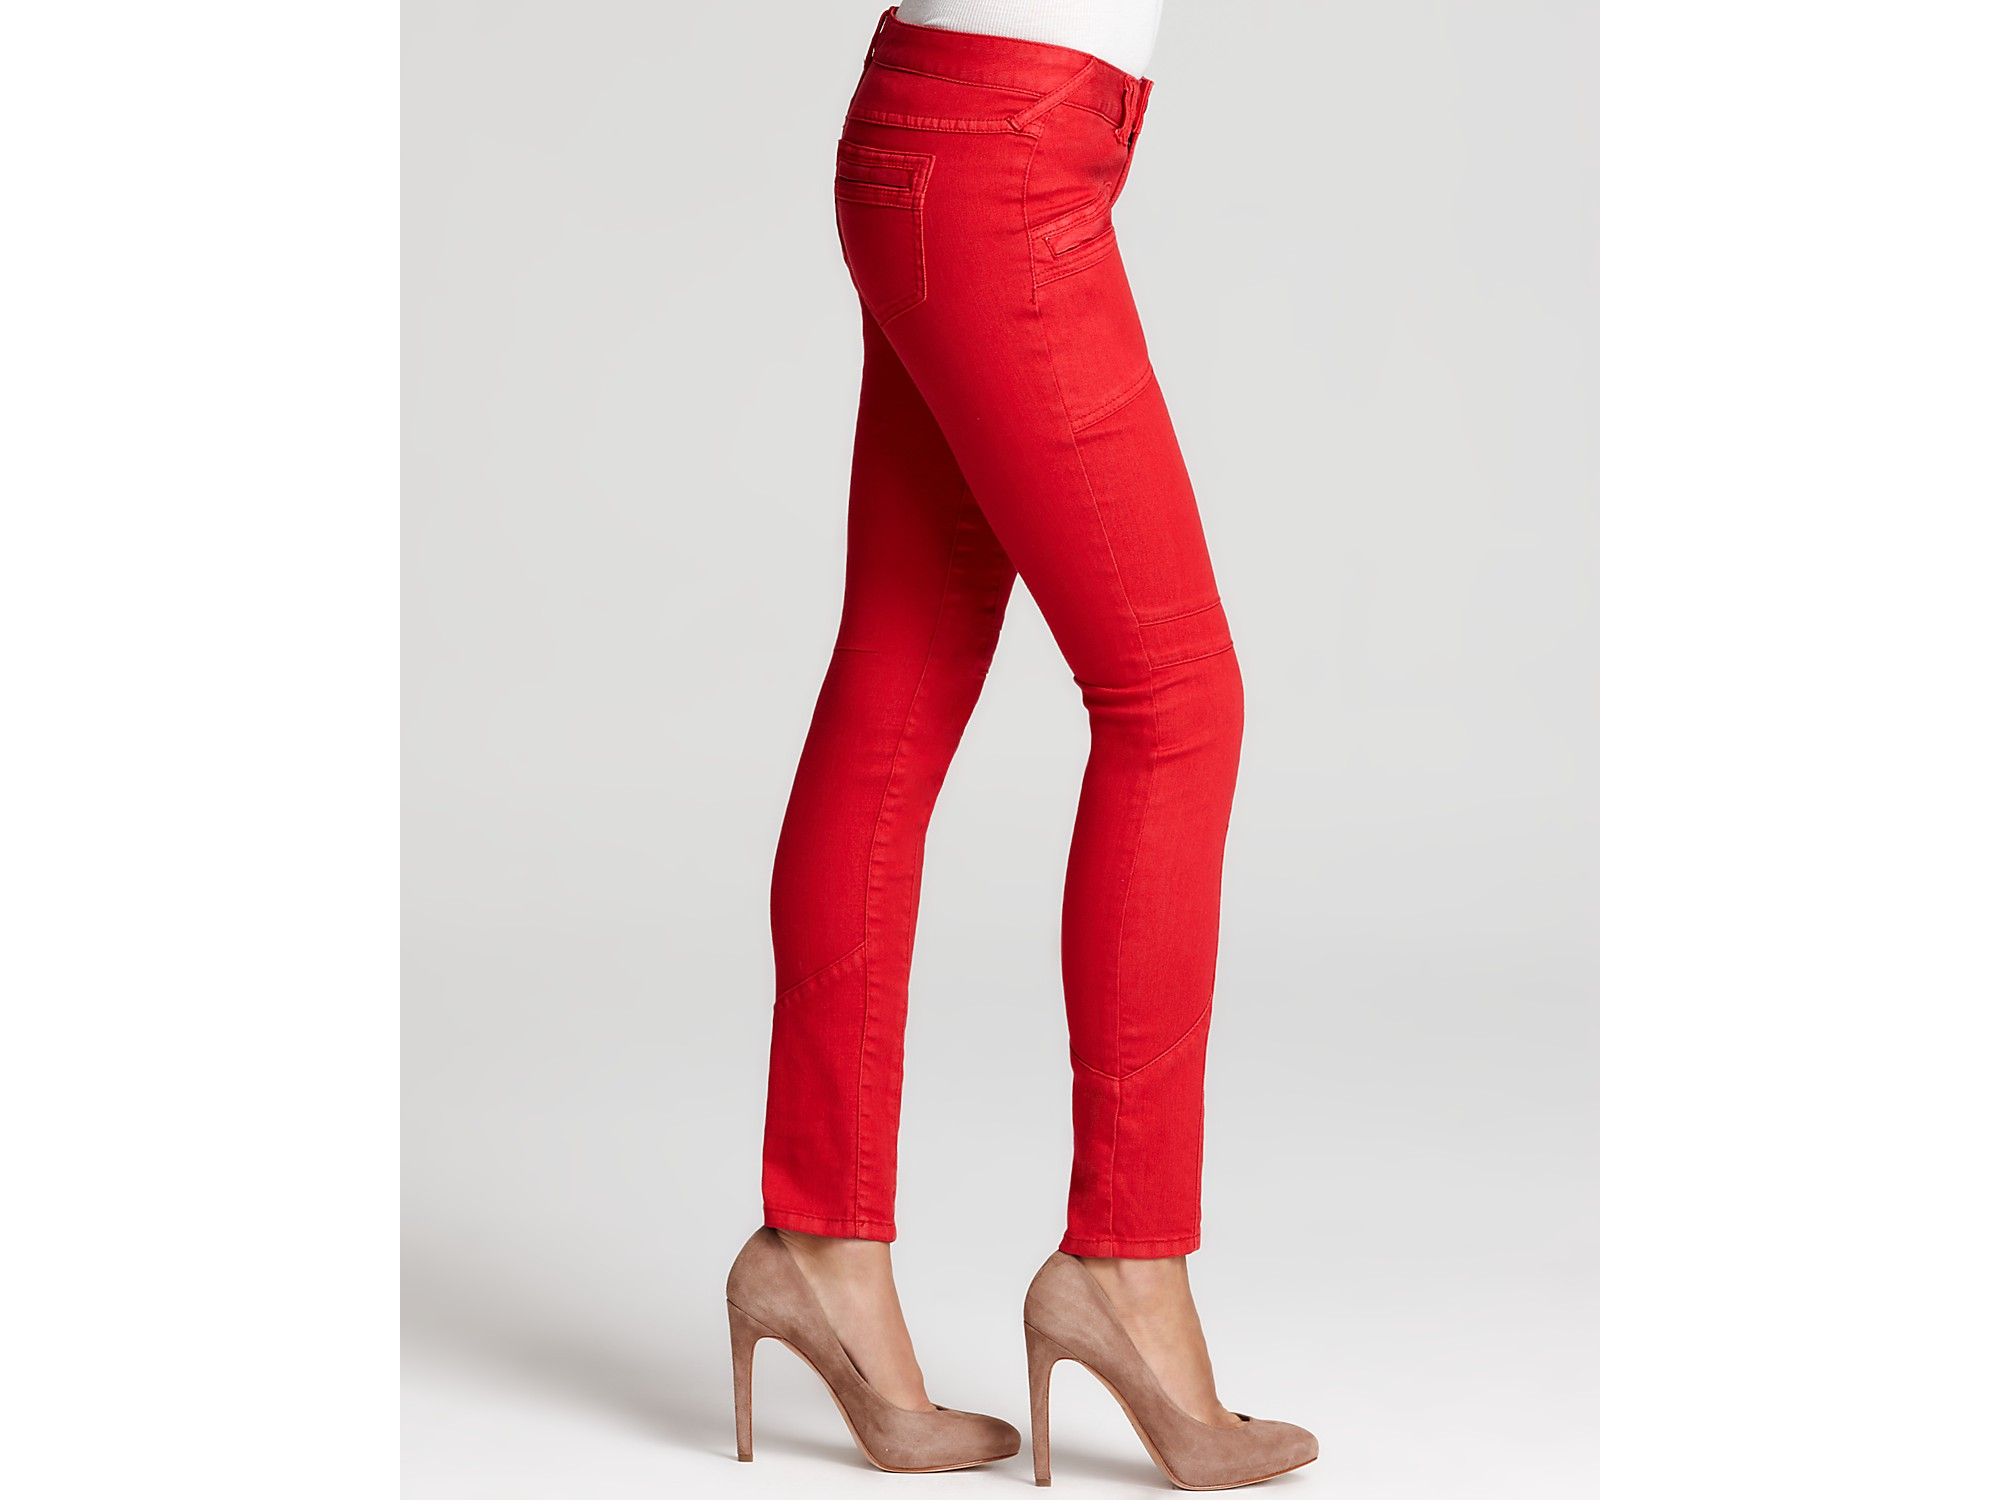 Free people Stretch Utility Jeans in Ruby Red in Red | Lyst